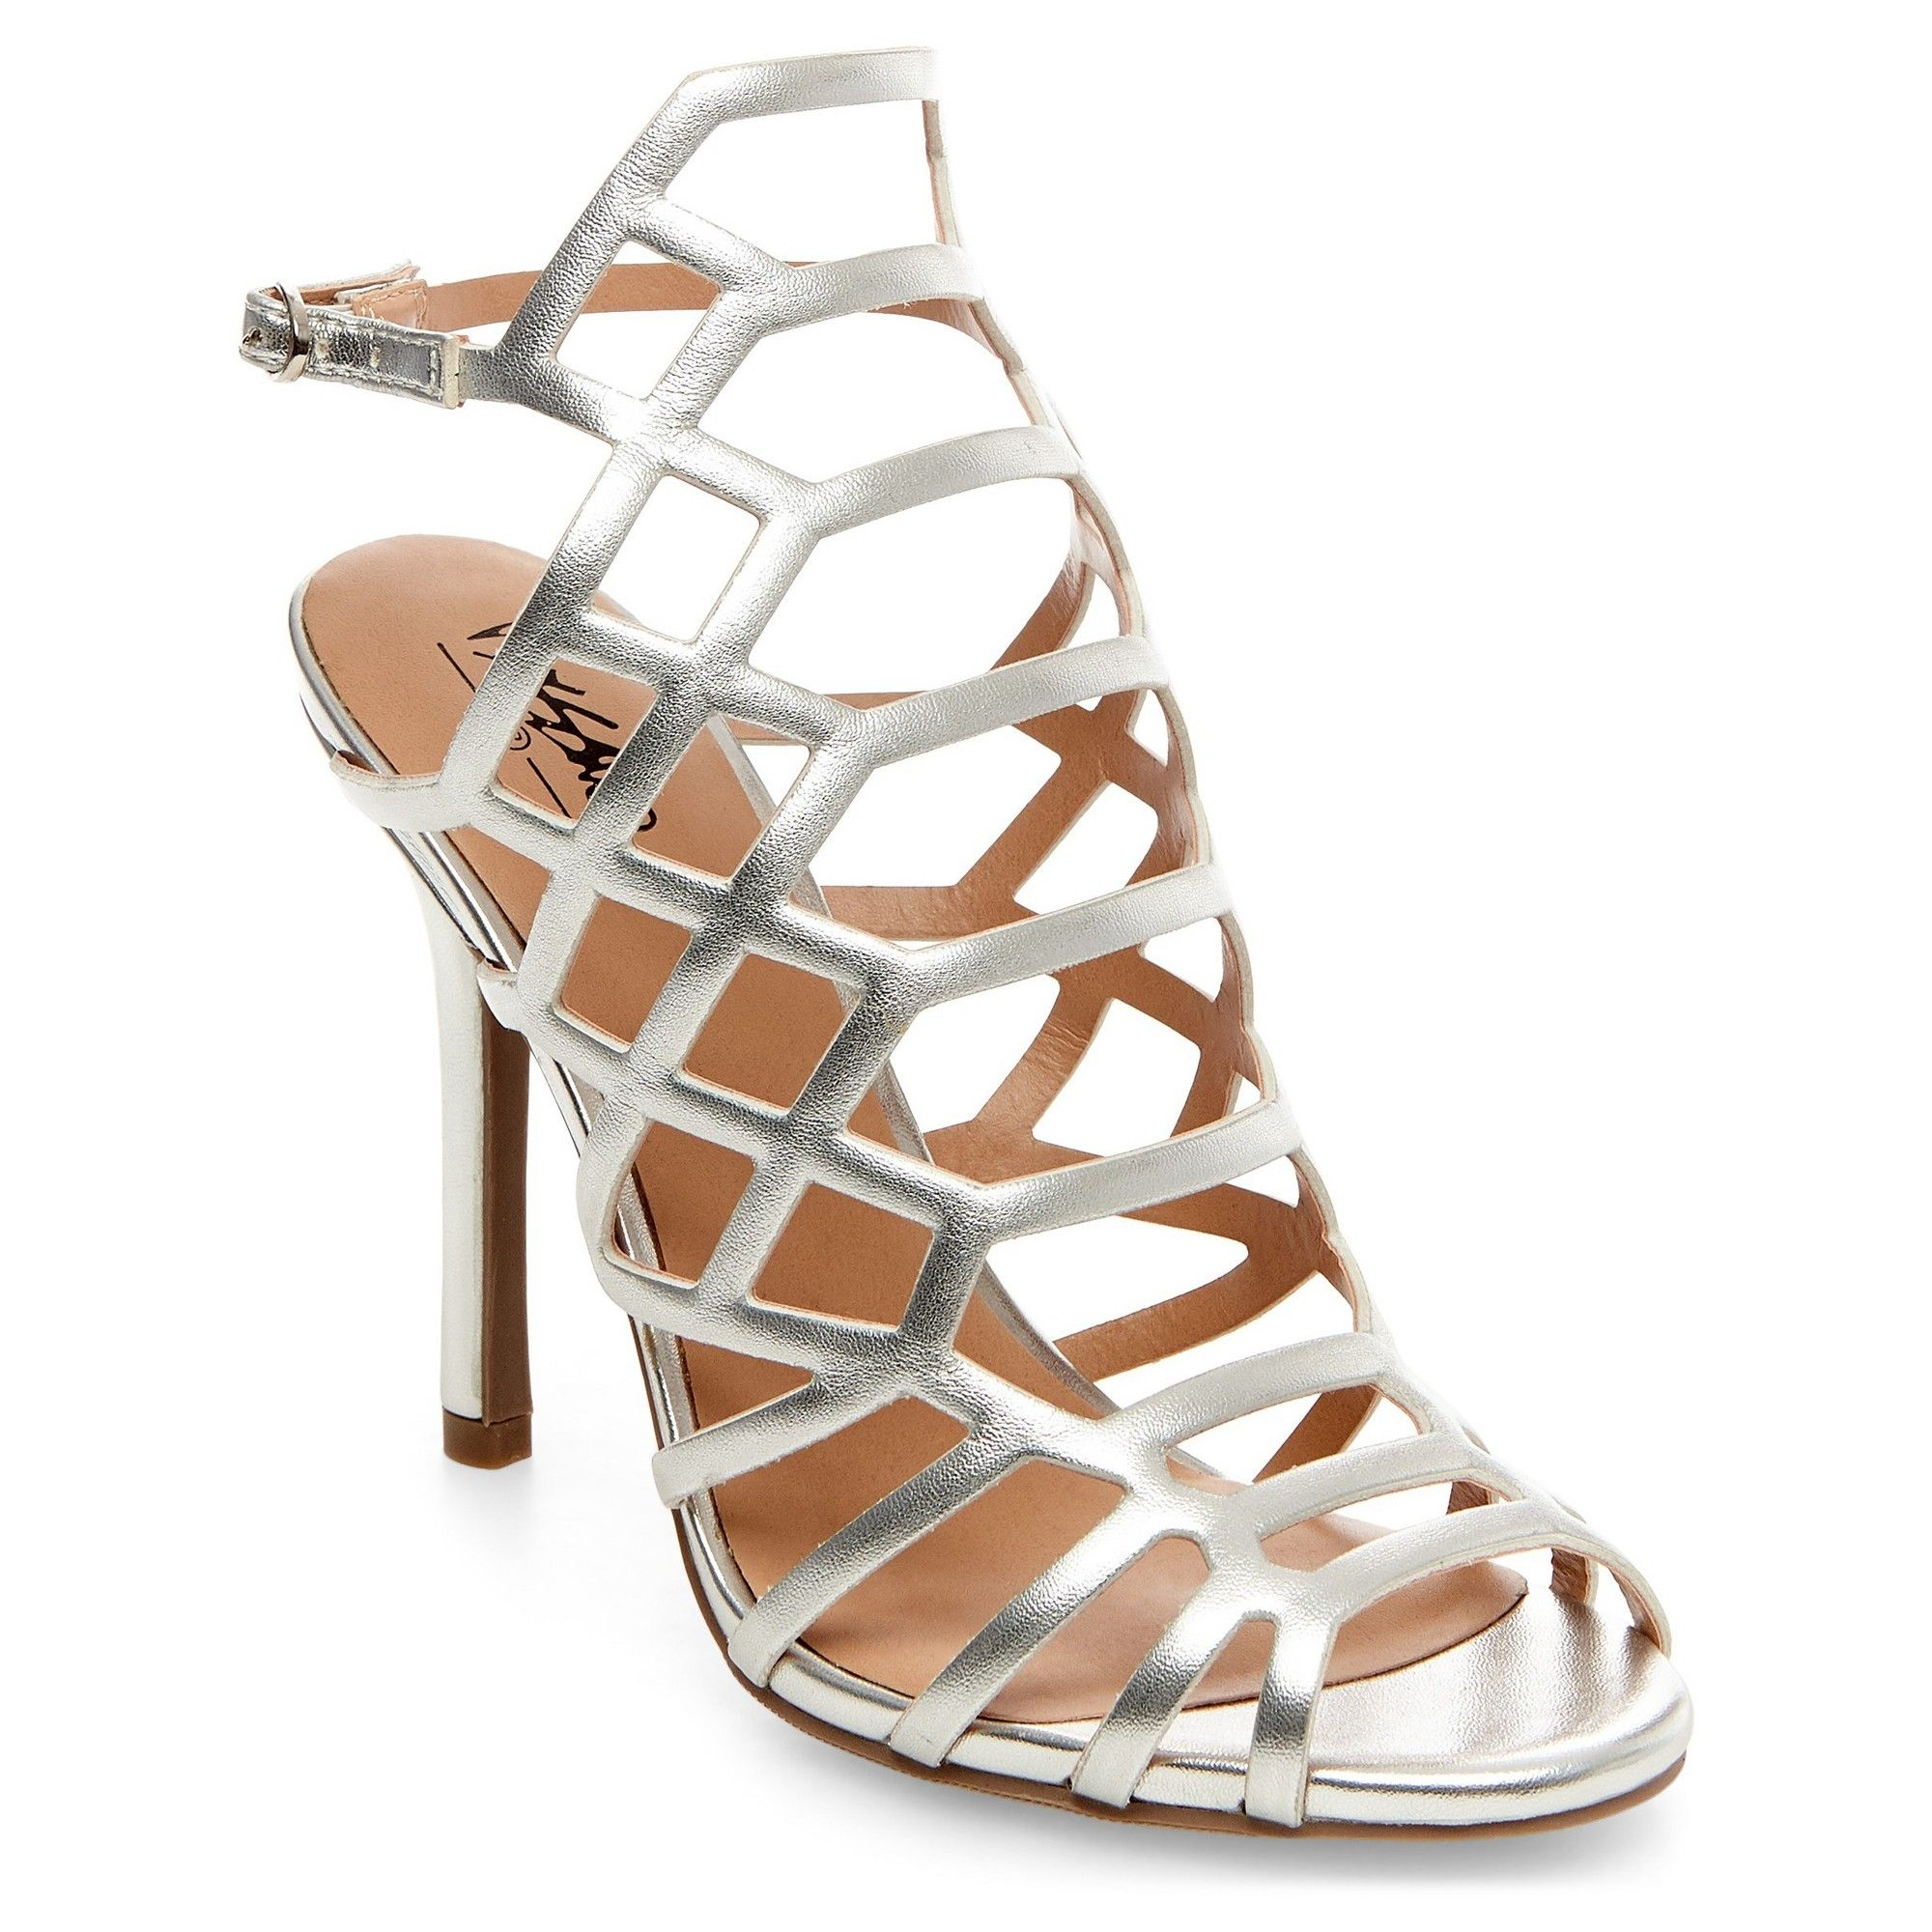 3c4349c6f77 Women s Kylea Caged Heel Gladiator Pumps with Straps Mossimo - Silver 8